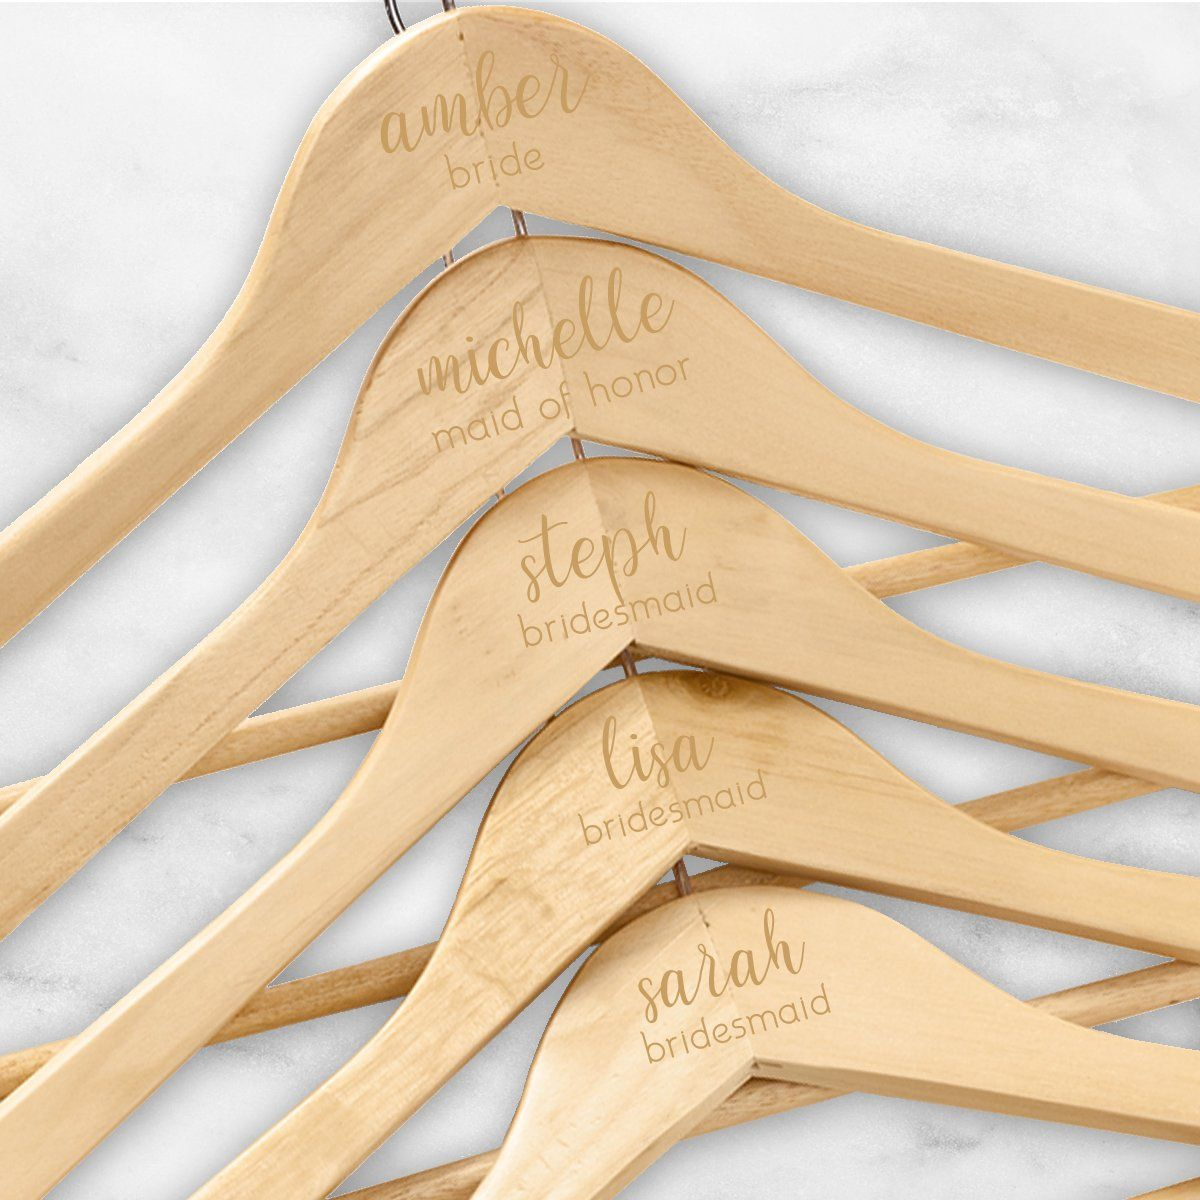 Personalized Bride/Bridesmaid Wooden Hangers Set of 5